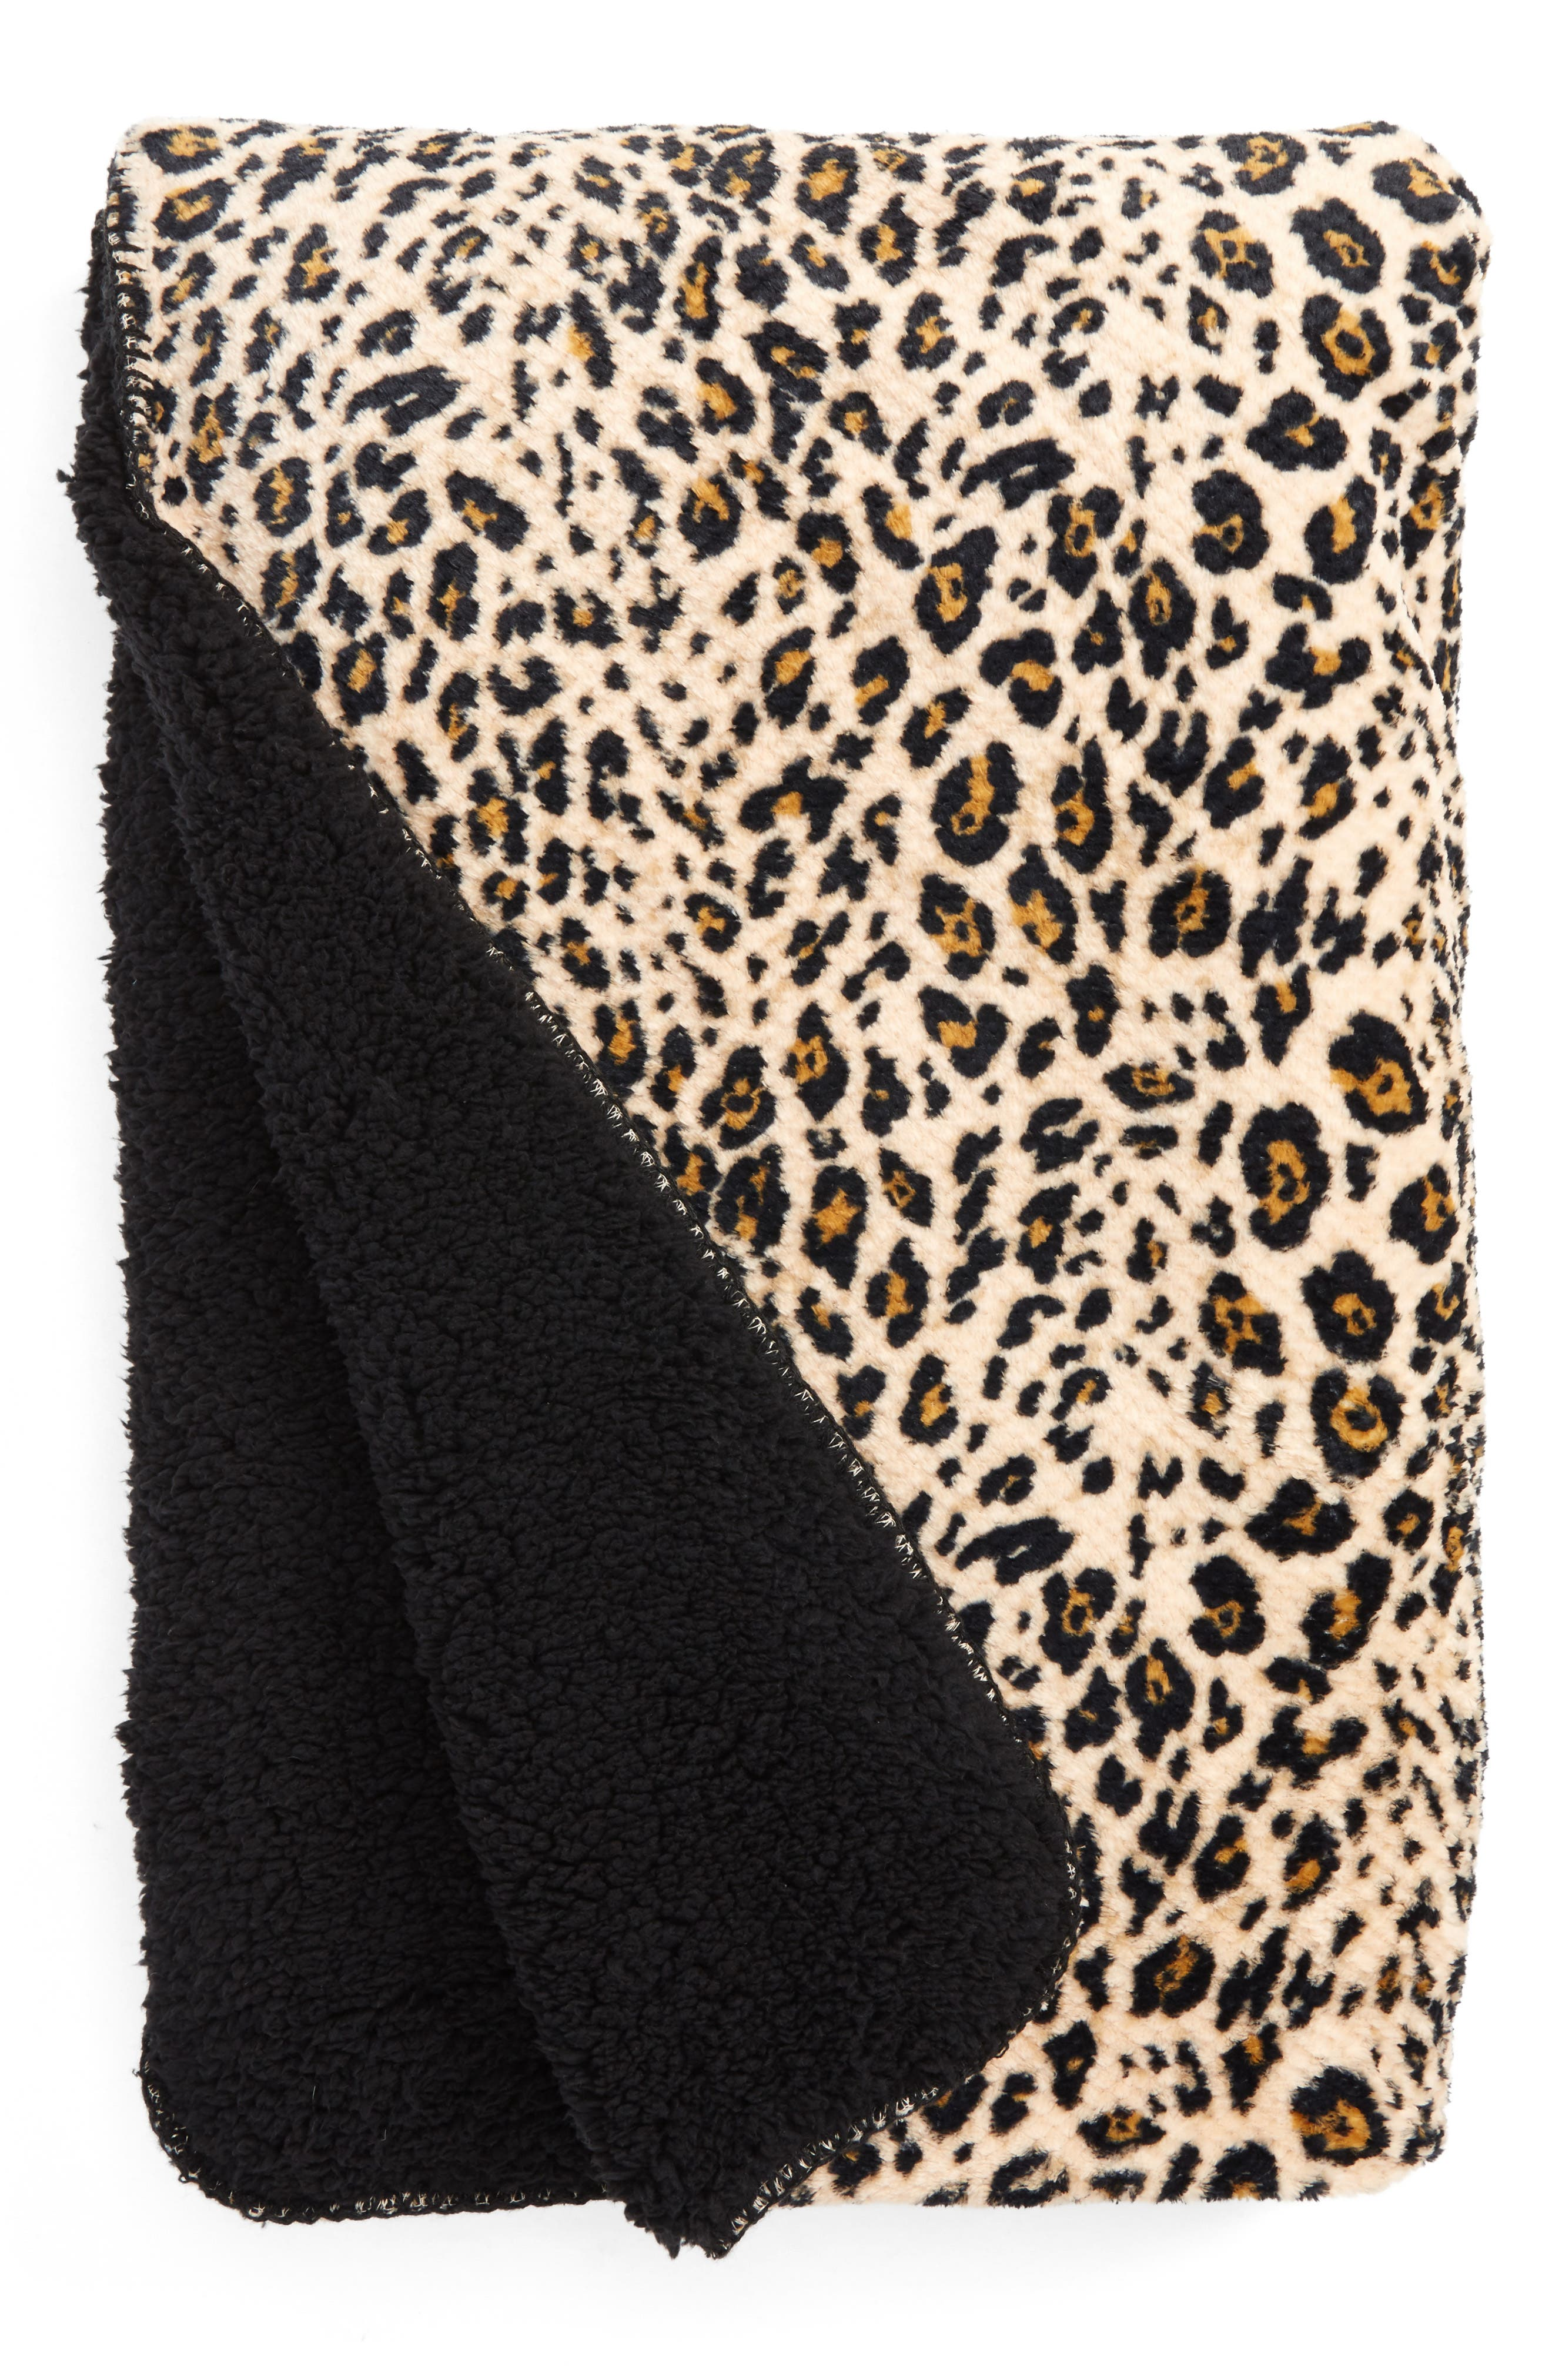 Leopard Print Faux Shearling Blanket,                         Main,                         color, 250